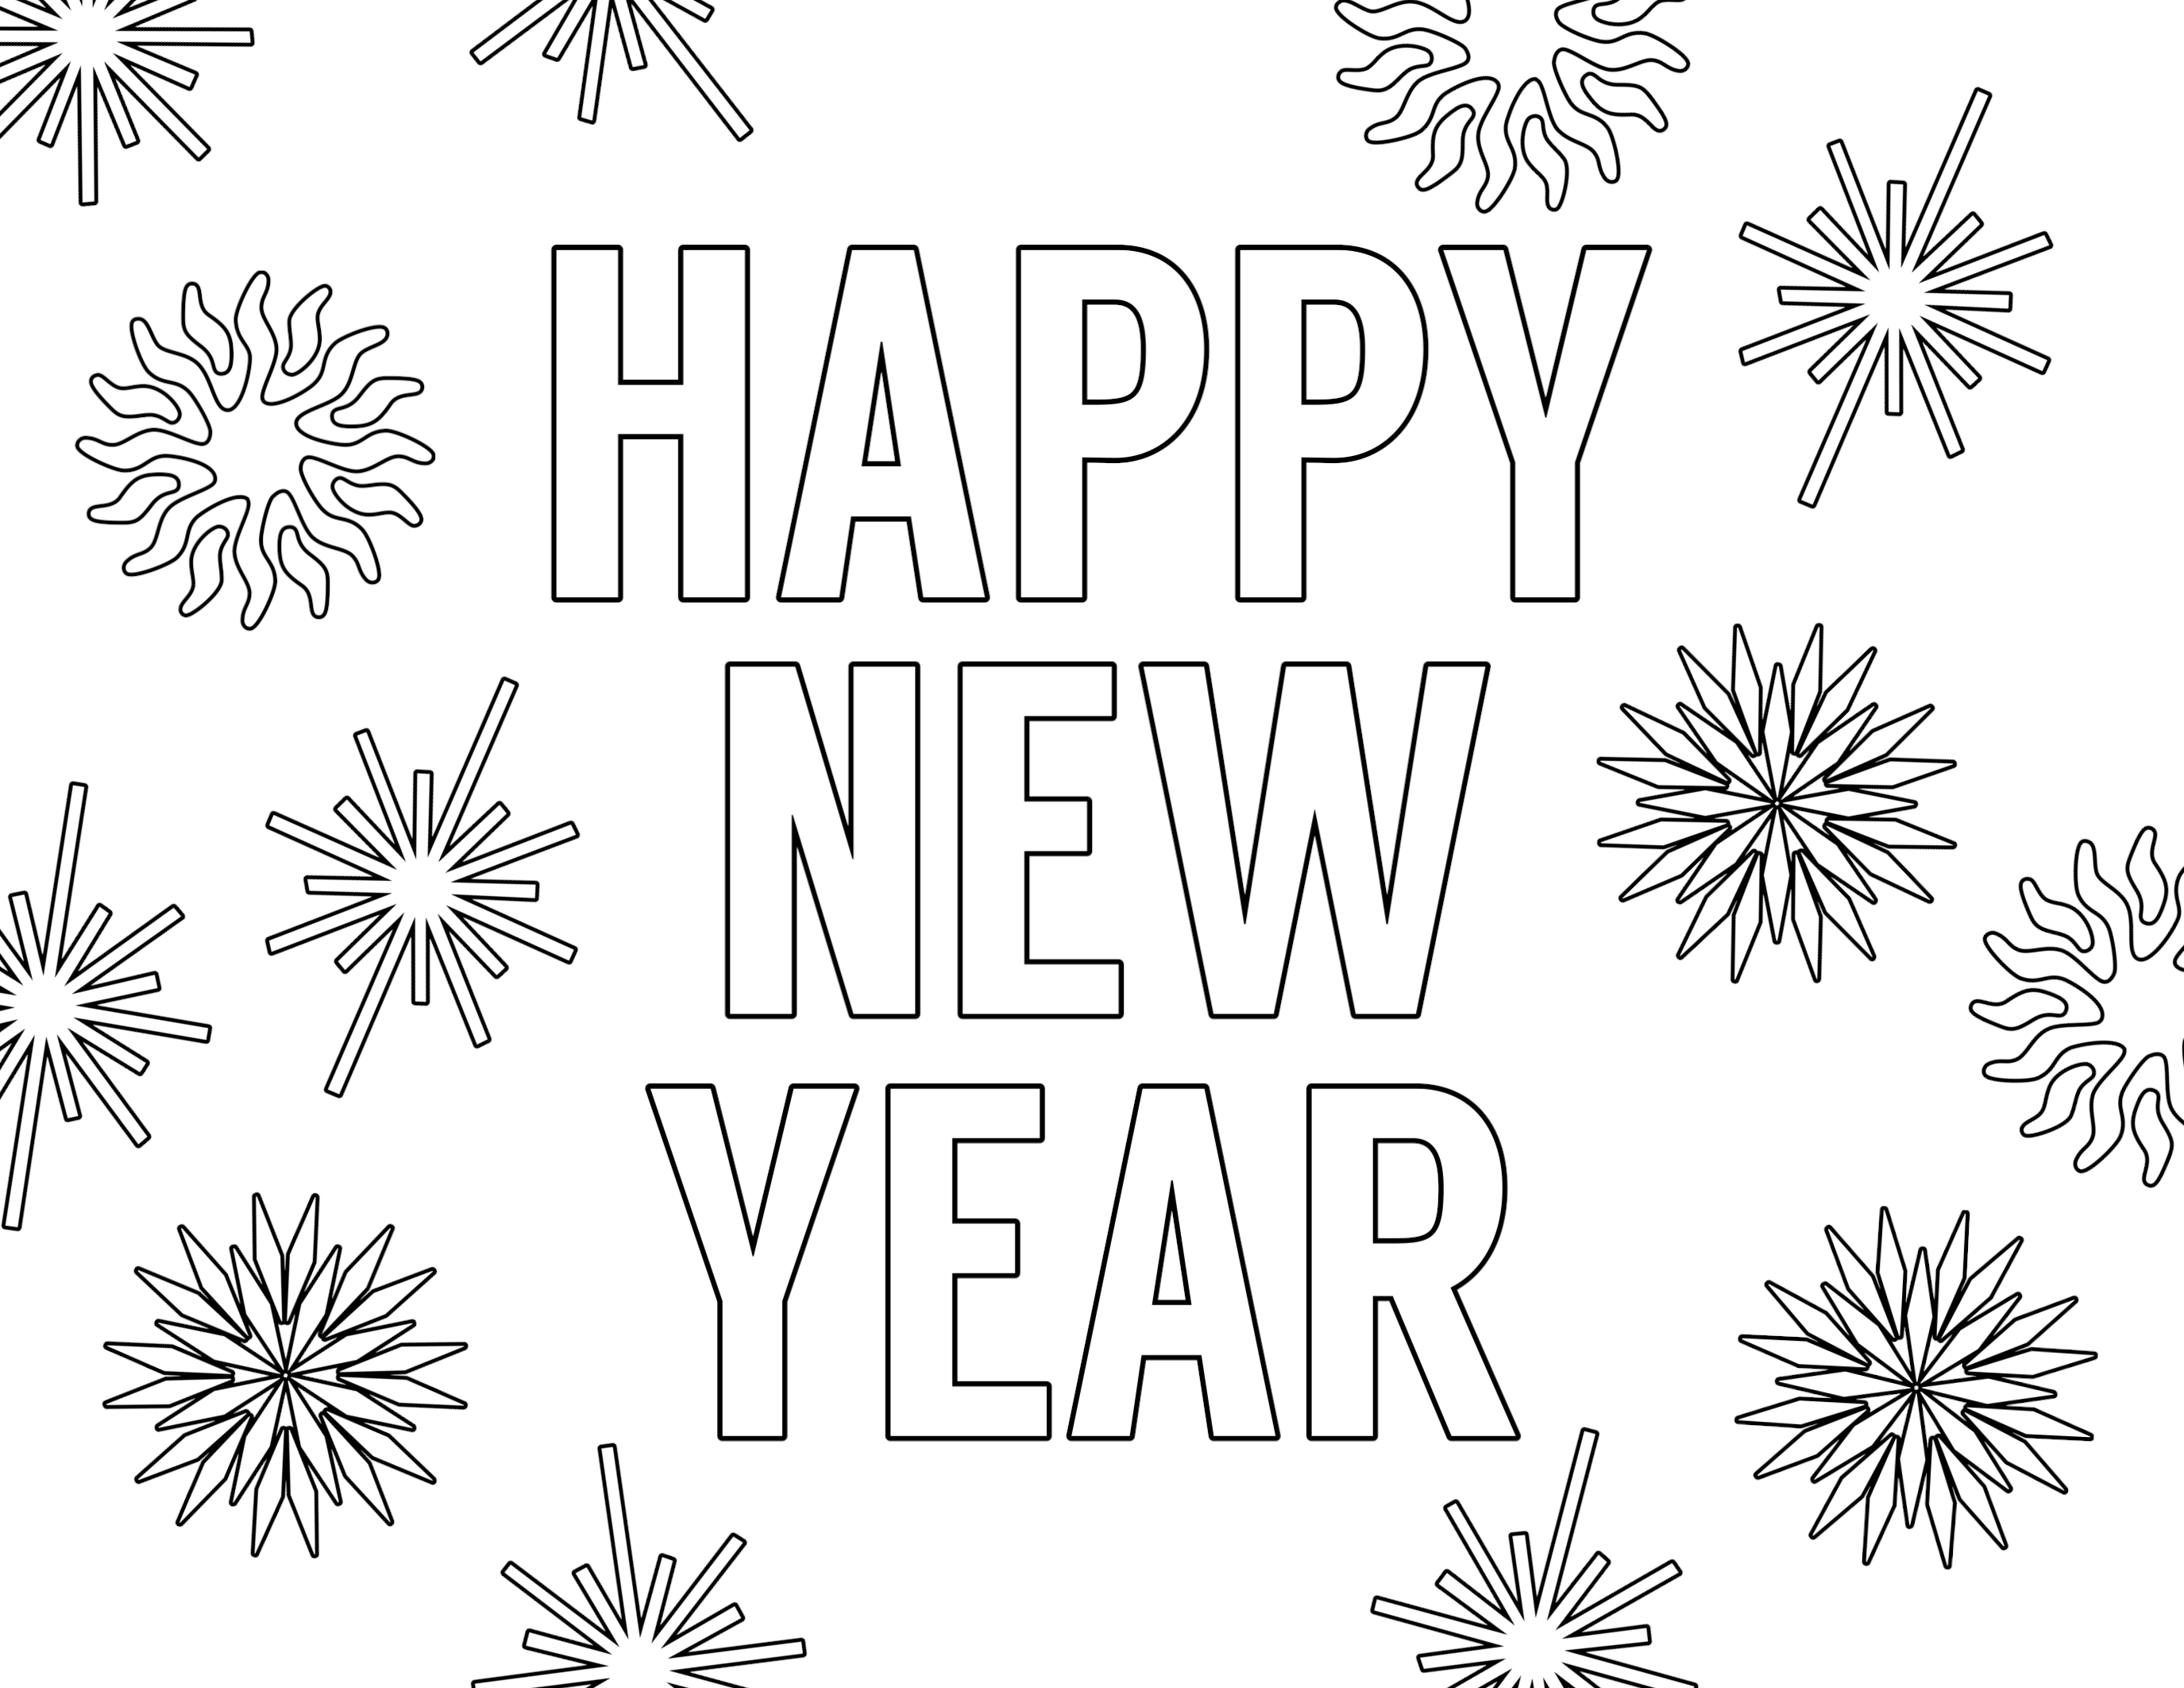 Happy New Year Coloring Pages Free Printable - Paper Trail ...